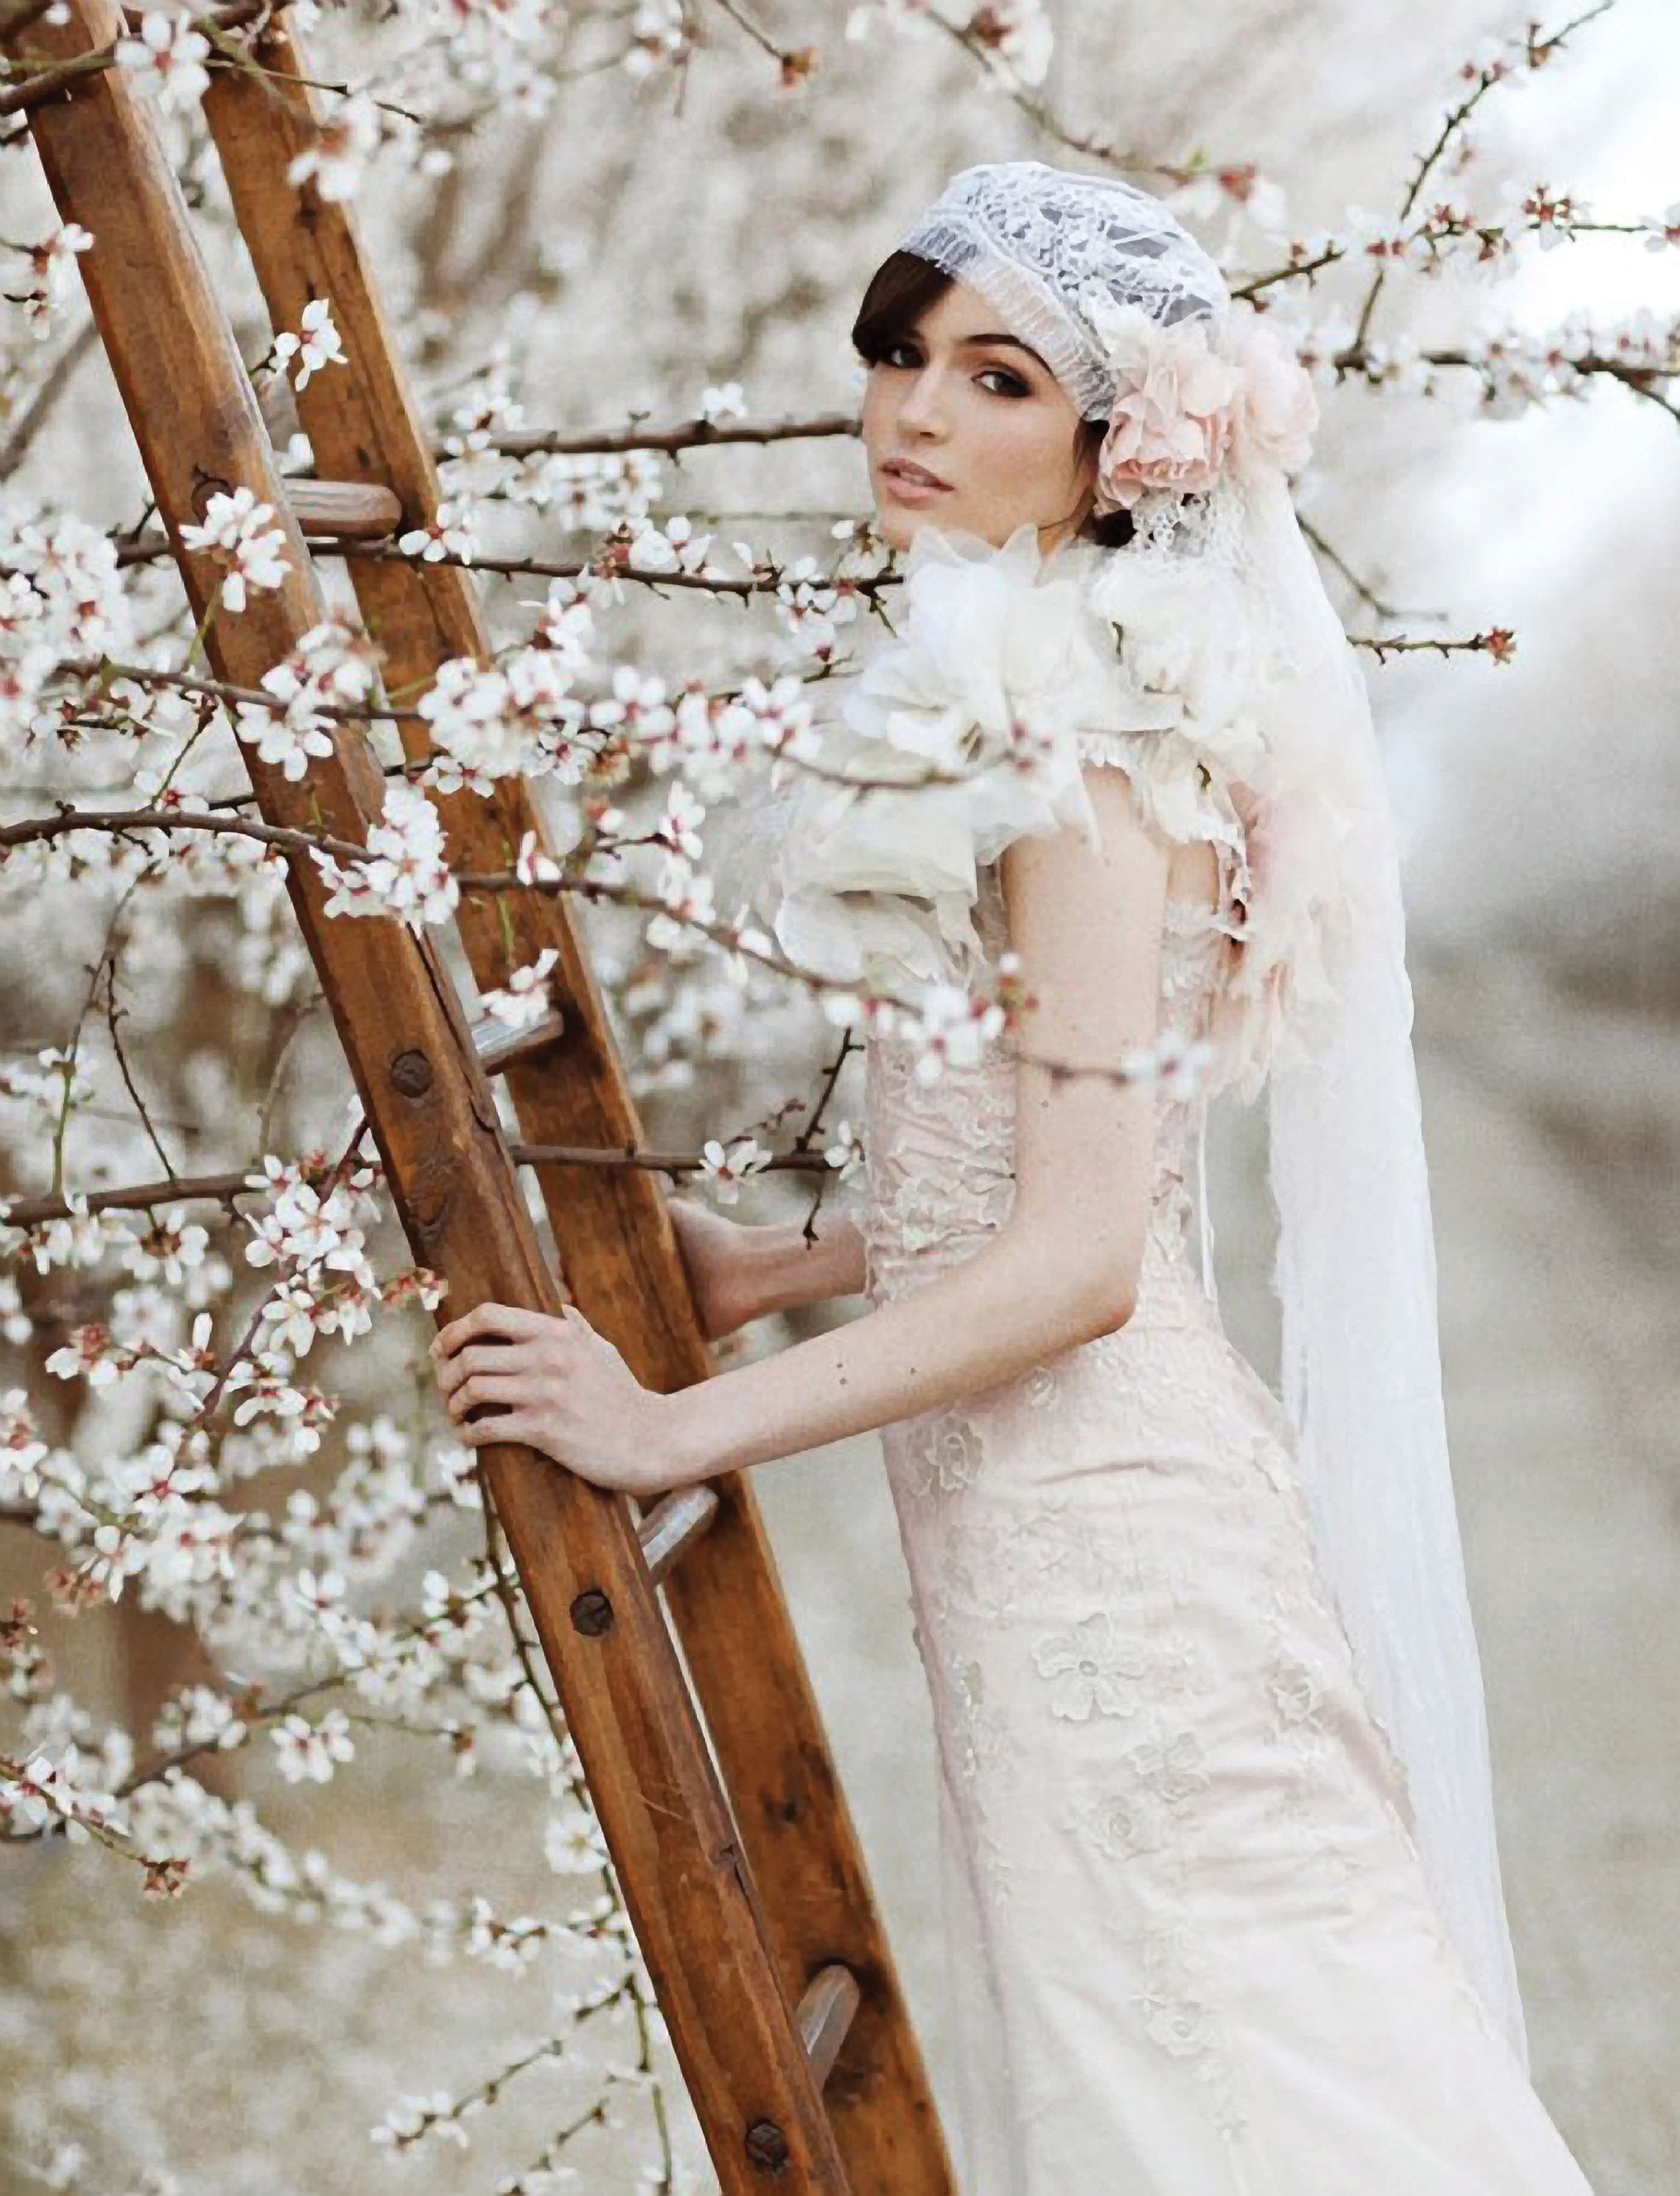 winter bride orchard wedding inspiration 600x784